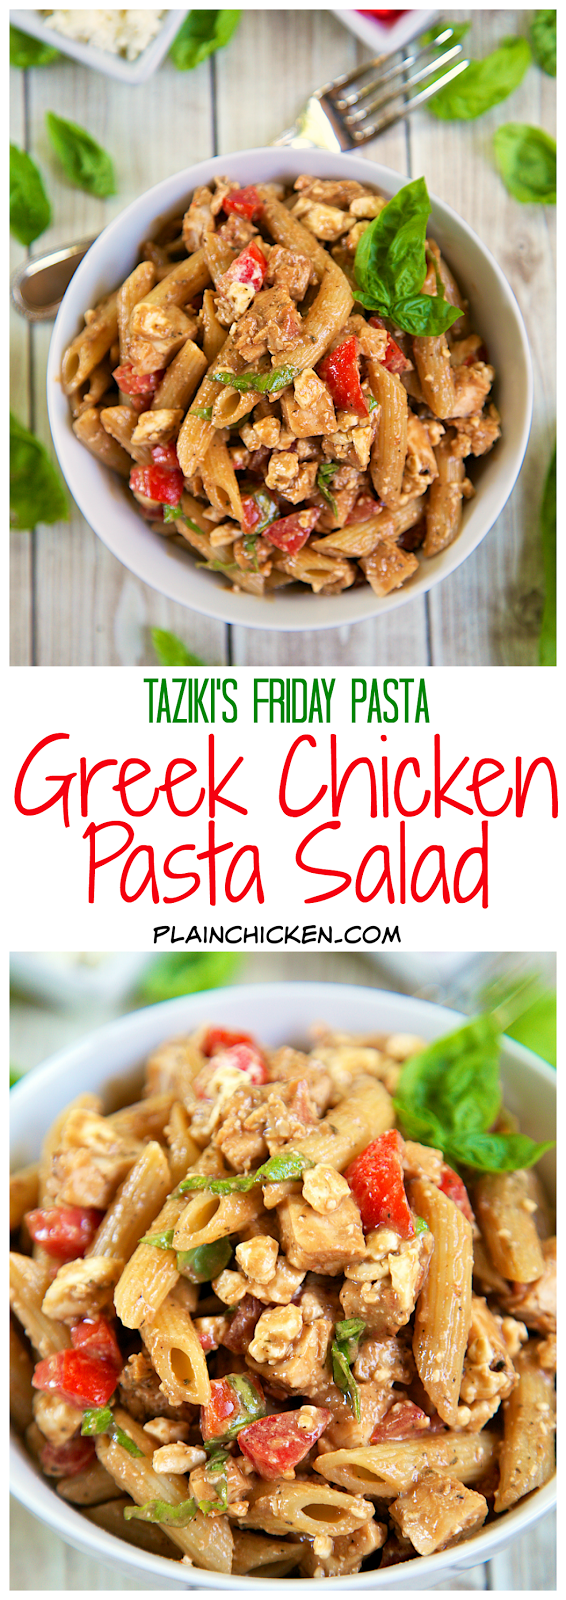 Greek Chicken Pasta Salad  - recipe for Taziki's Friday Pasta - homemade vinaigrette tossed with penne pasta, chicken, feta, tomatoes and fresh basil - good warm or cold. Great for a potluck. Can make a day ahead - the flavors get better as it sits. This is seriously delicious!